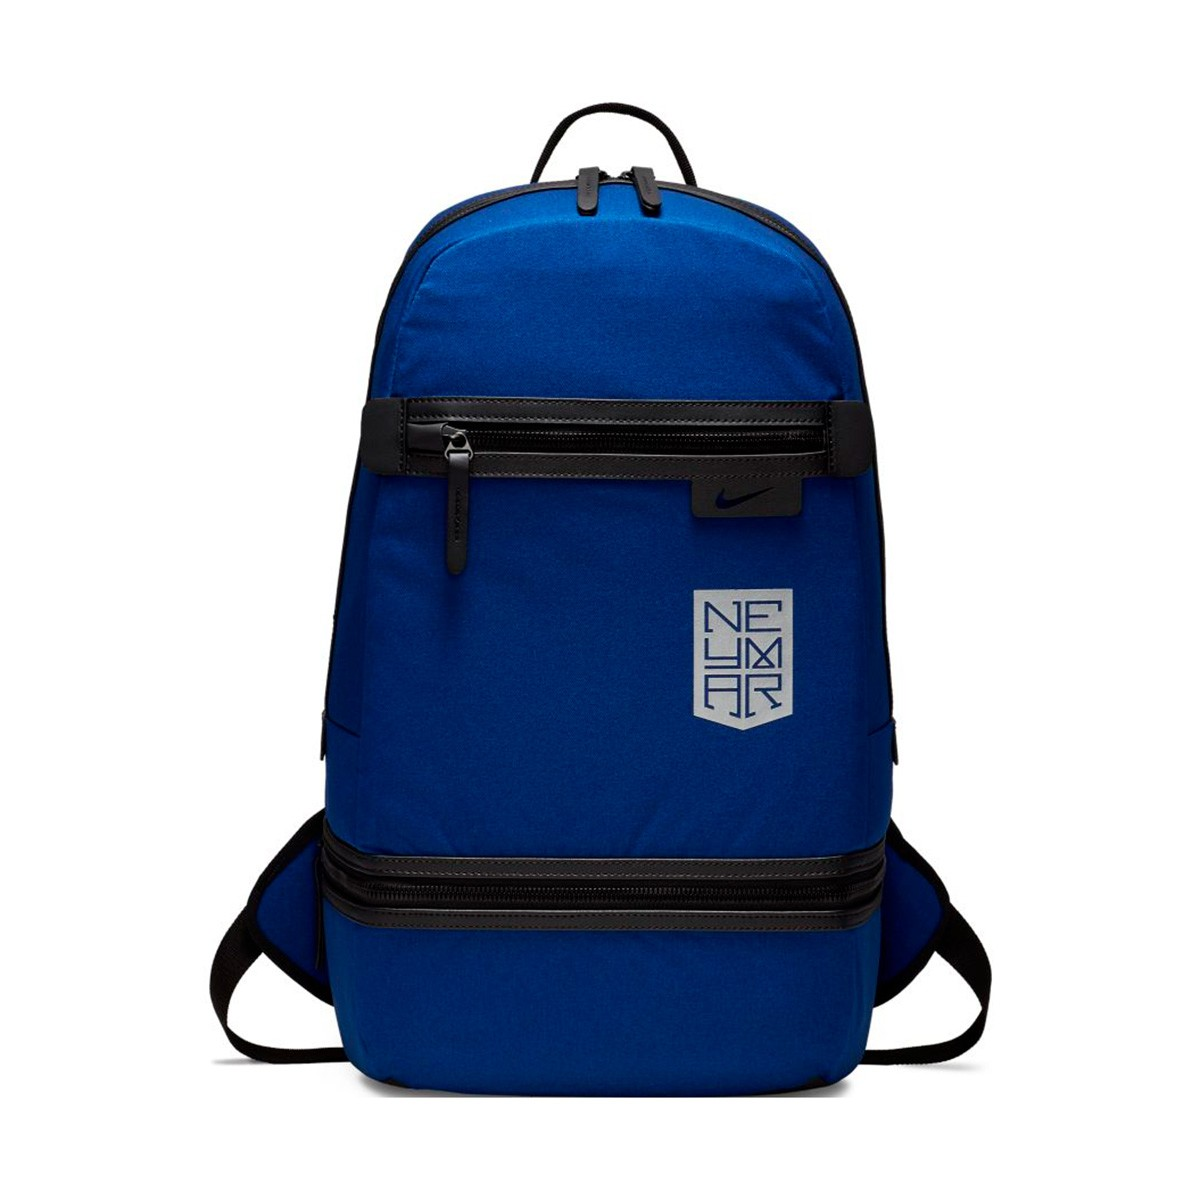 Mochila Nike Black Blue Soccer Neymar Leaked Deep Silver Royal Football Metallic rrwxAdqU